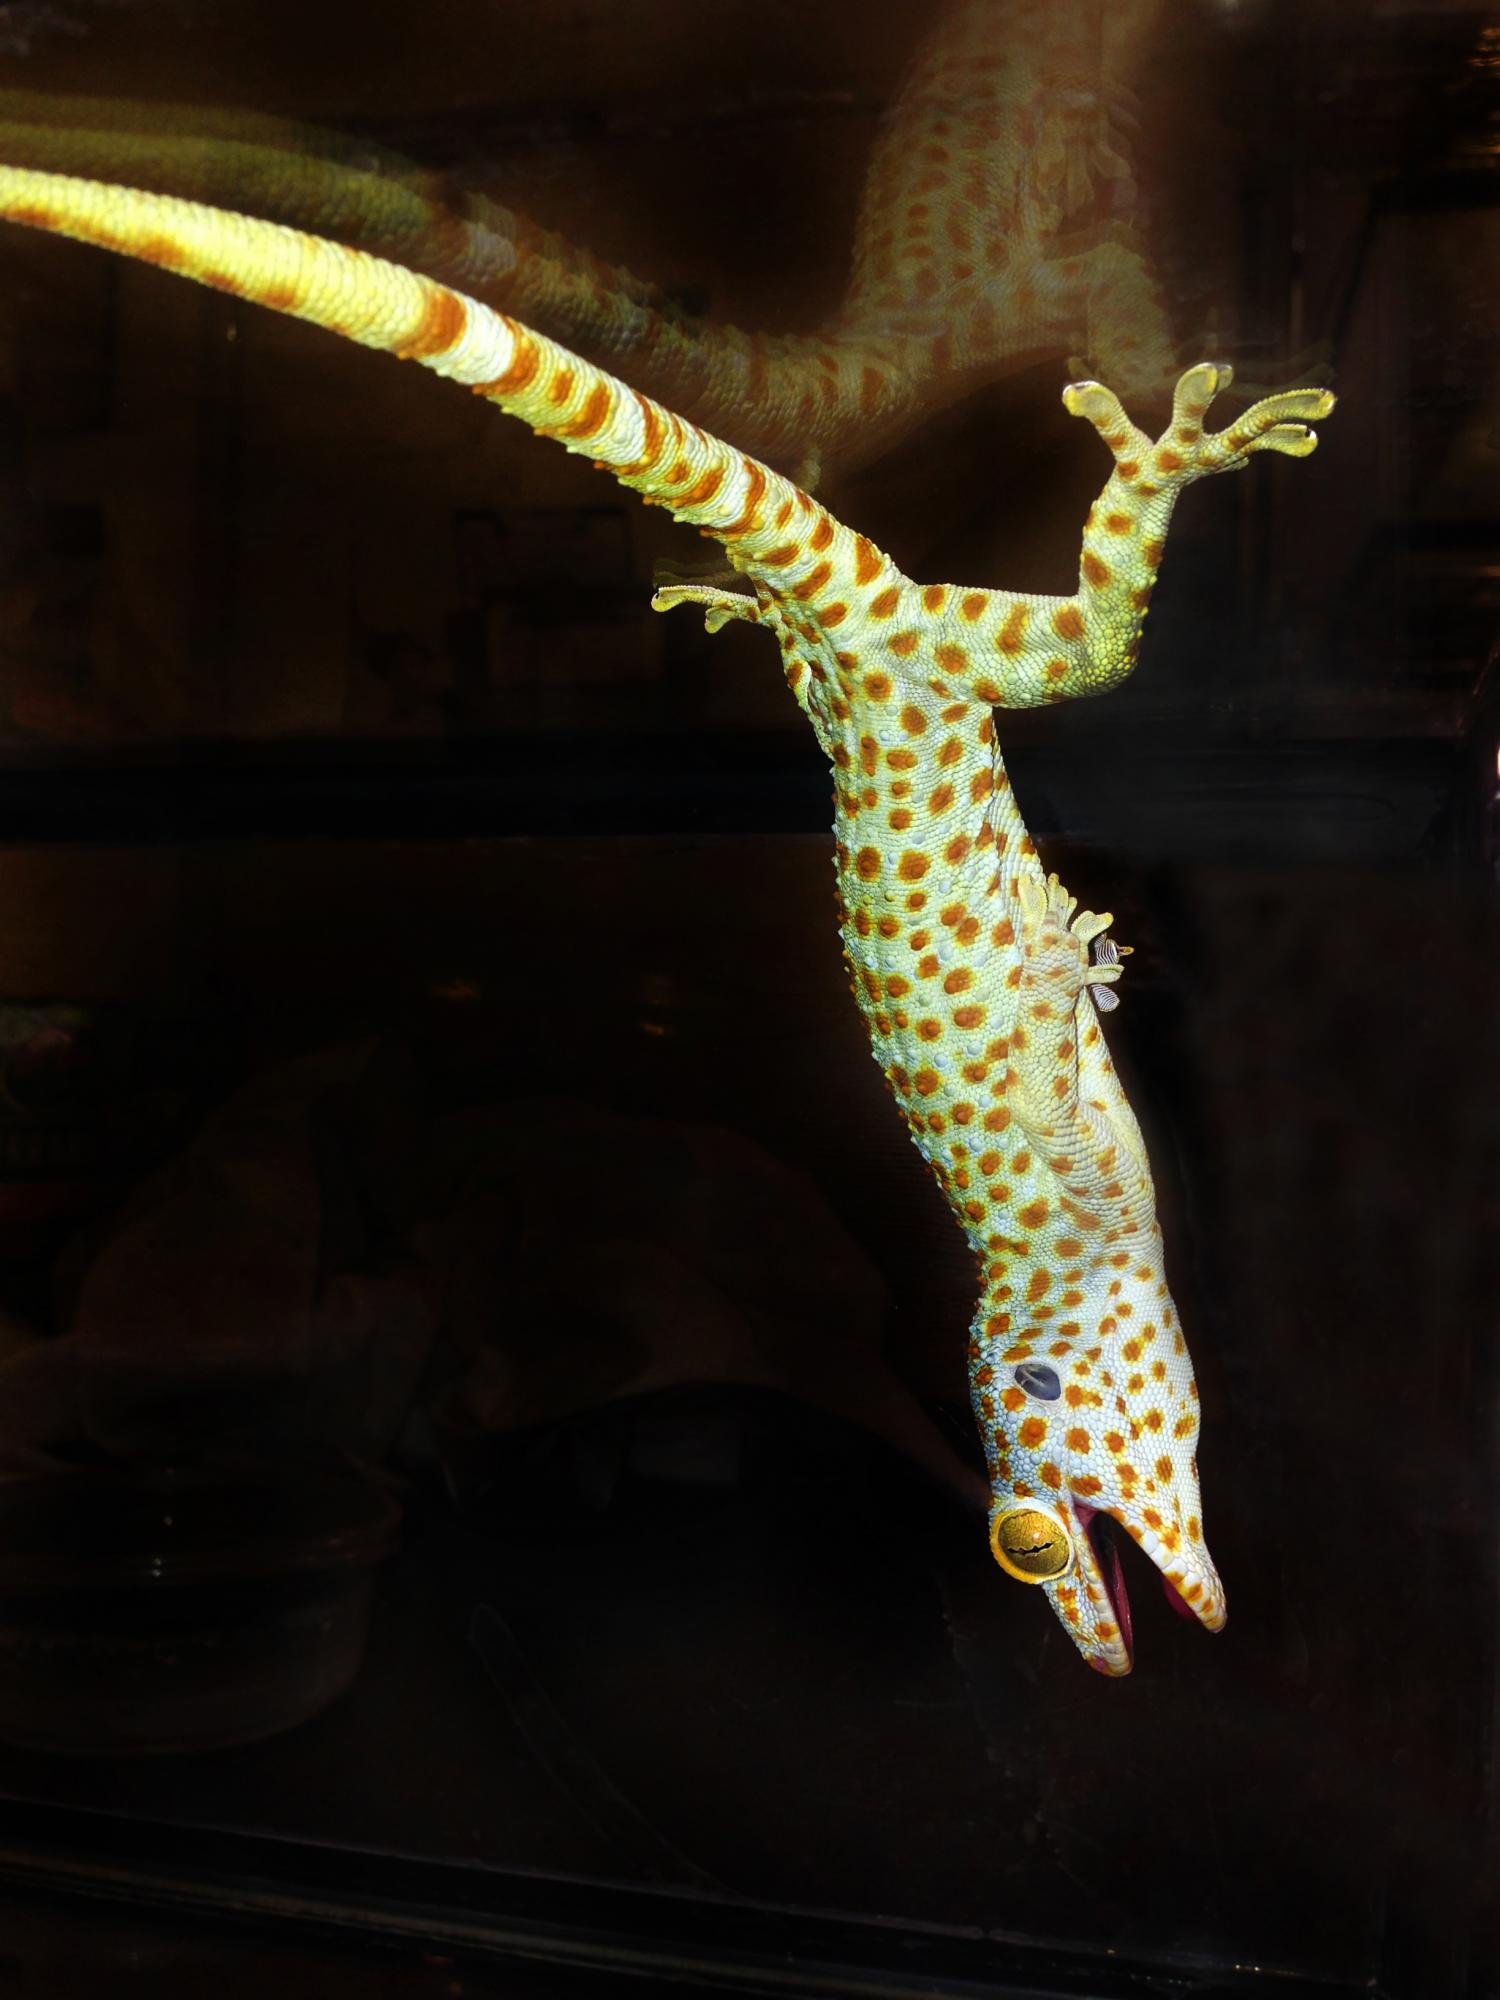 Leaping Lizards Research Tests The Limits Of Gecko Adhesion